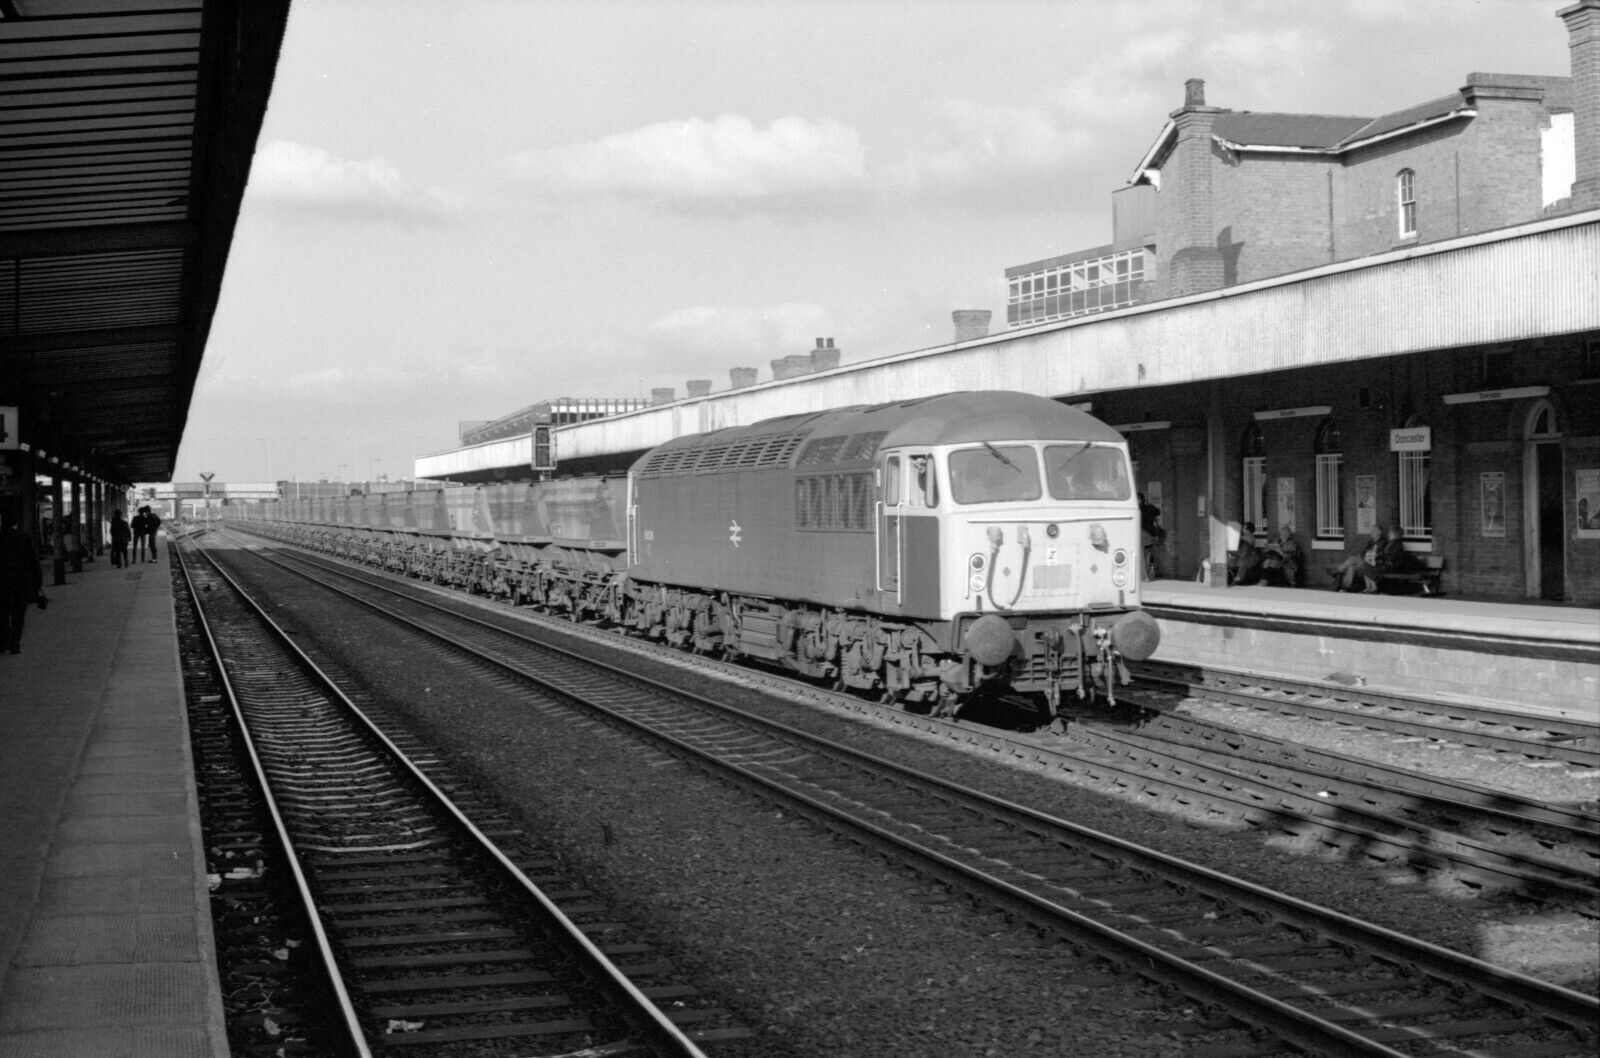 35mm raiway neg b/w 56028 doncaster 21/10/83 from scunthorpe direction